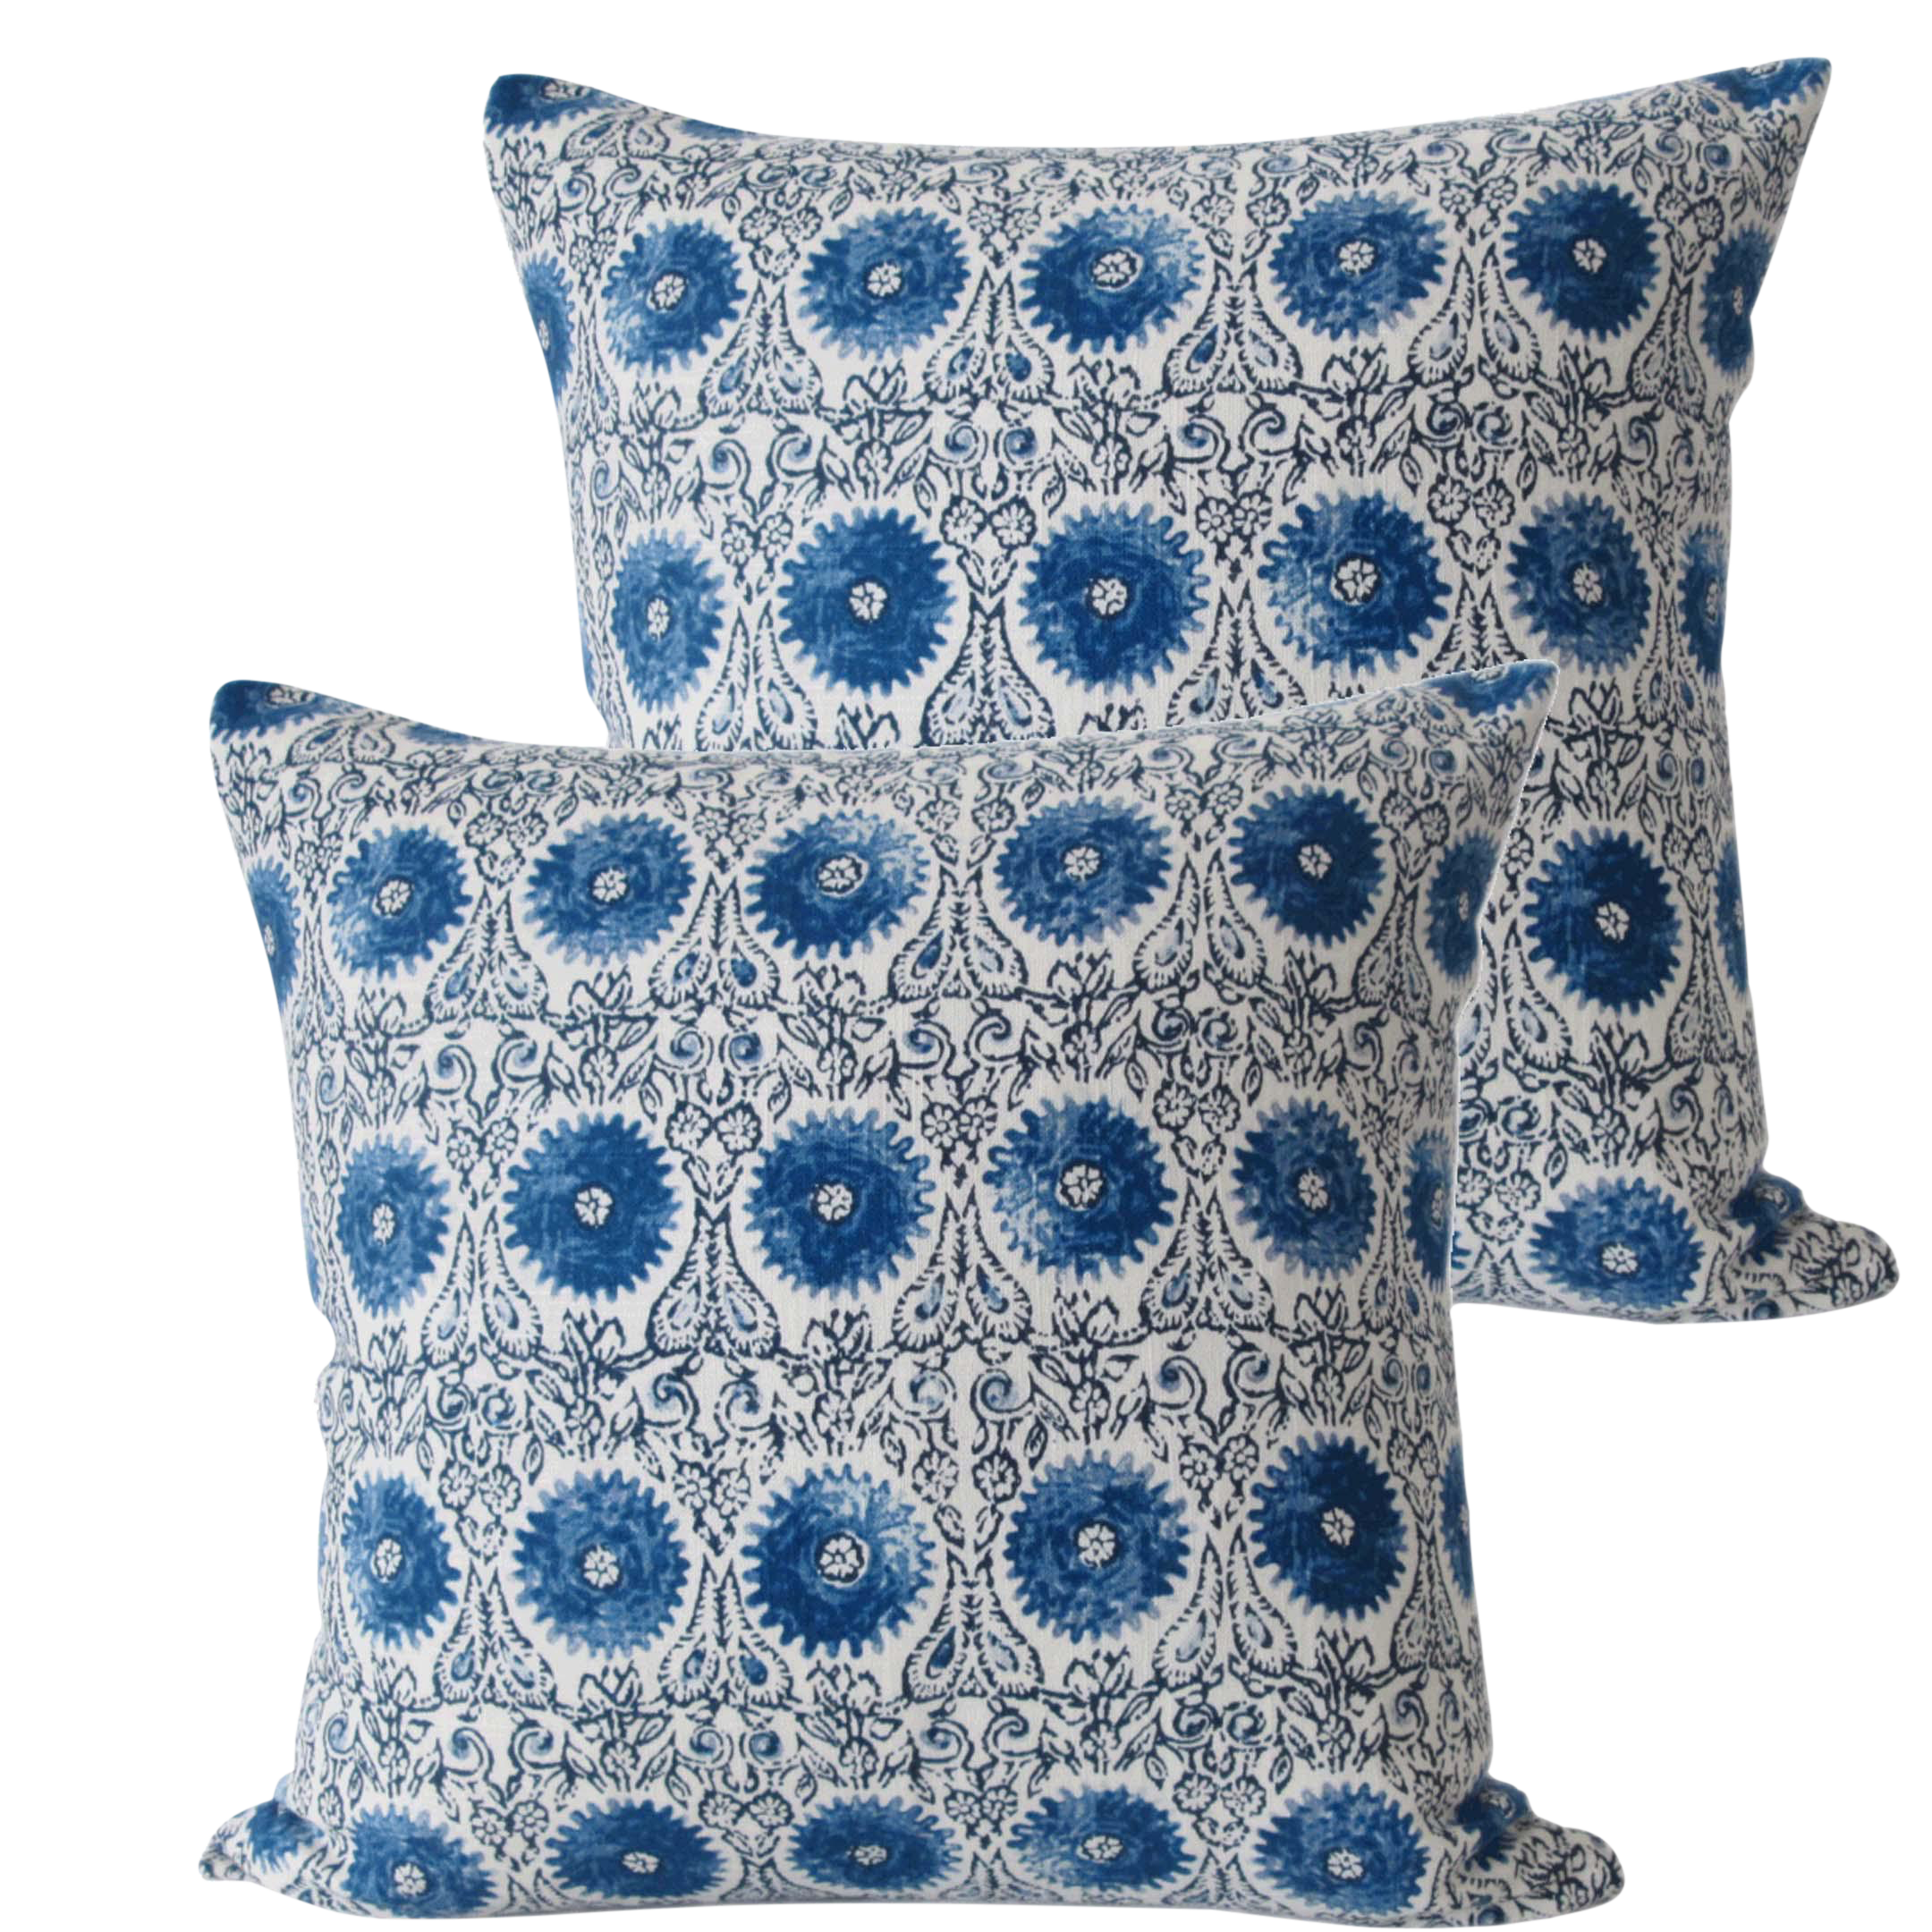 accent aqua decorative in maybe is pillow perfect behind damask and pin toss bed pillows square so wall blue accents white bedroom dark a